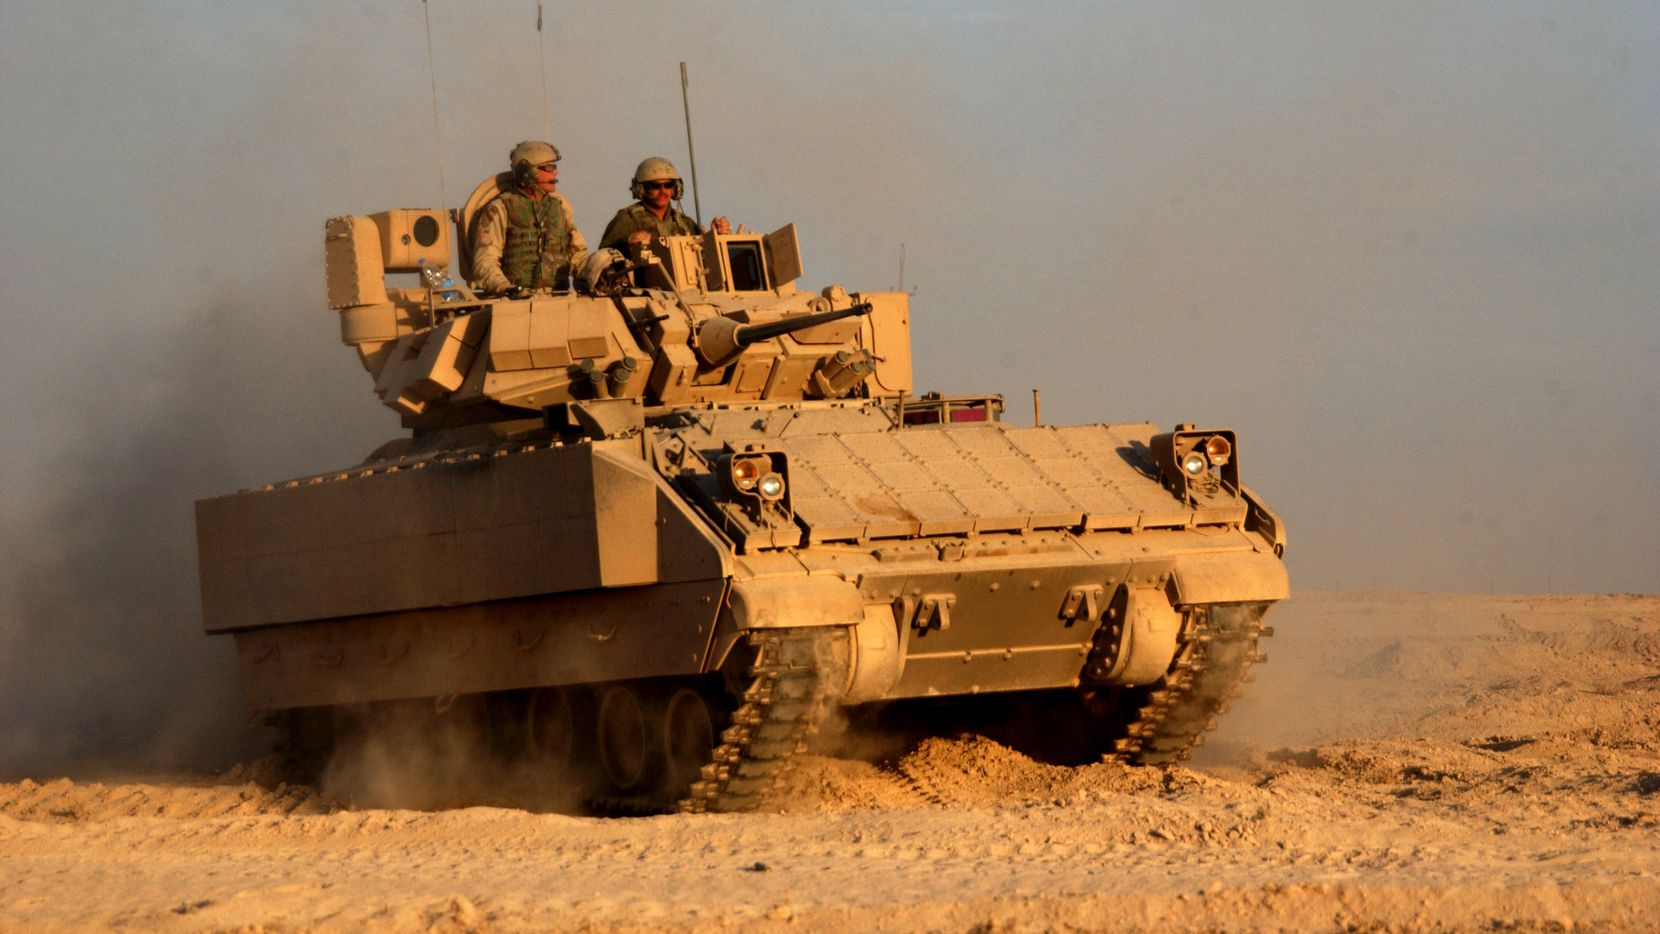 A Bradley Fighting Vehicle rolled back out to the fight after refueling during a combat operation in Fallujah, Iraq, in 2004.